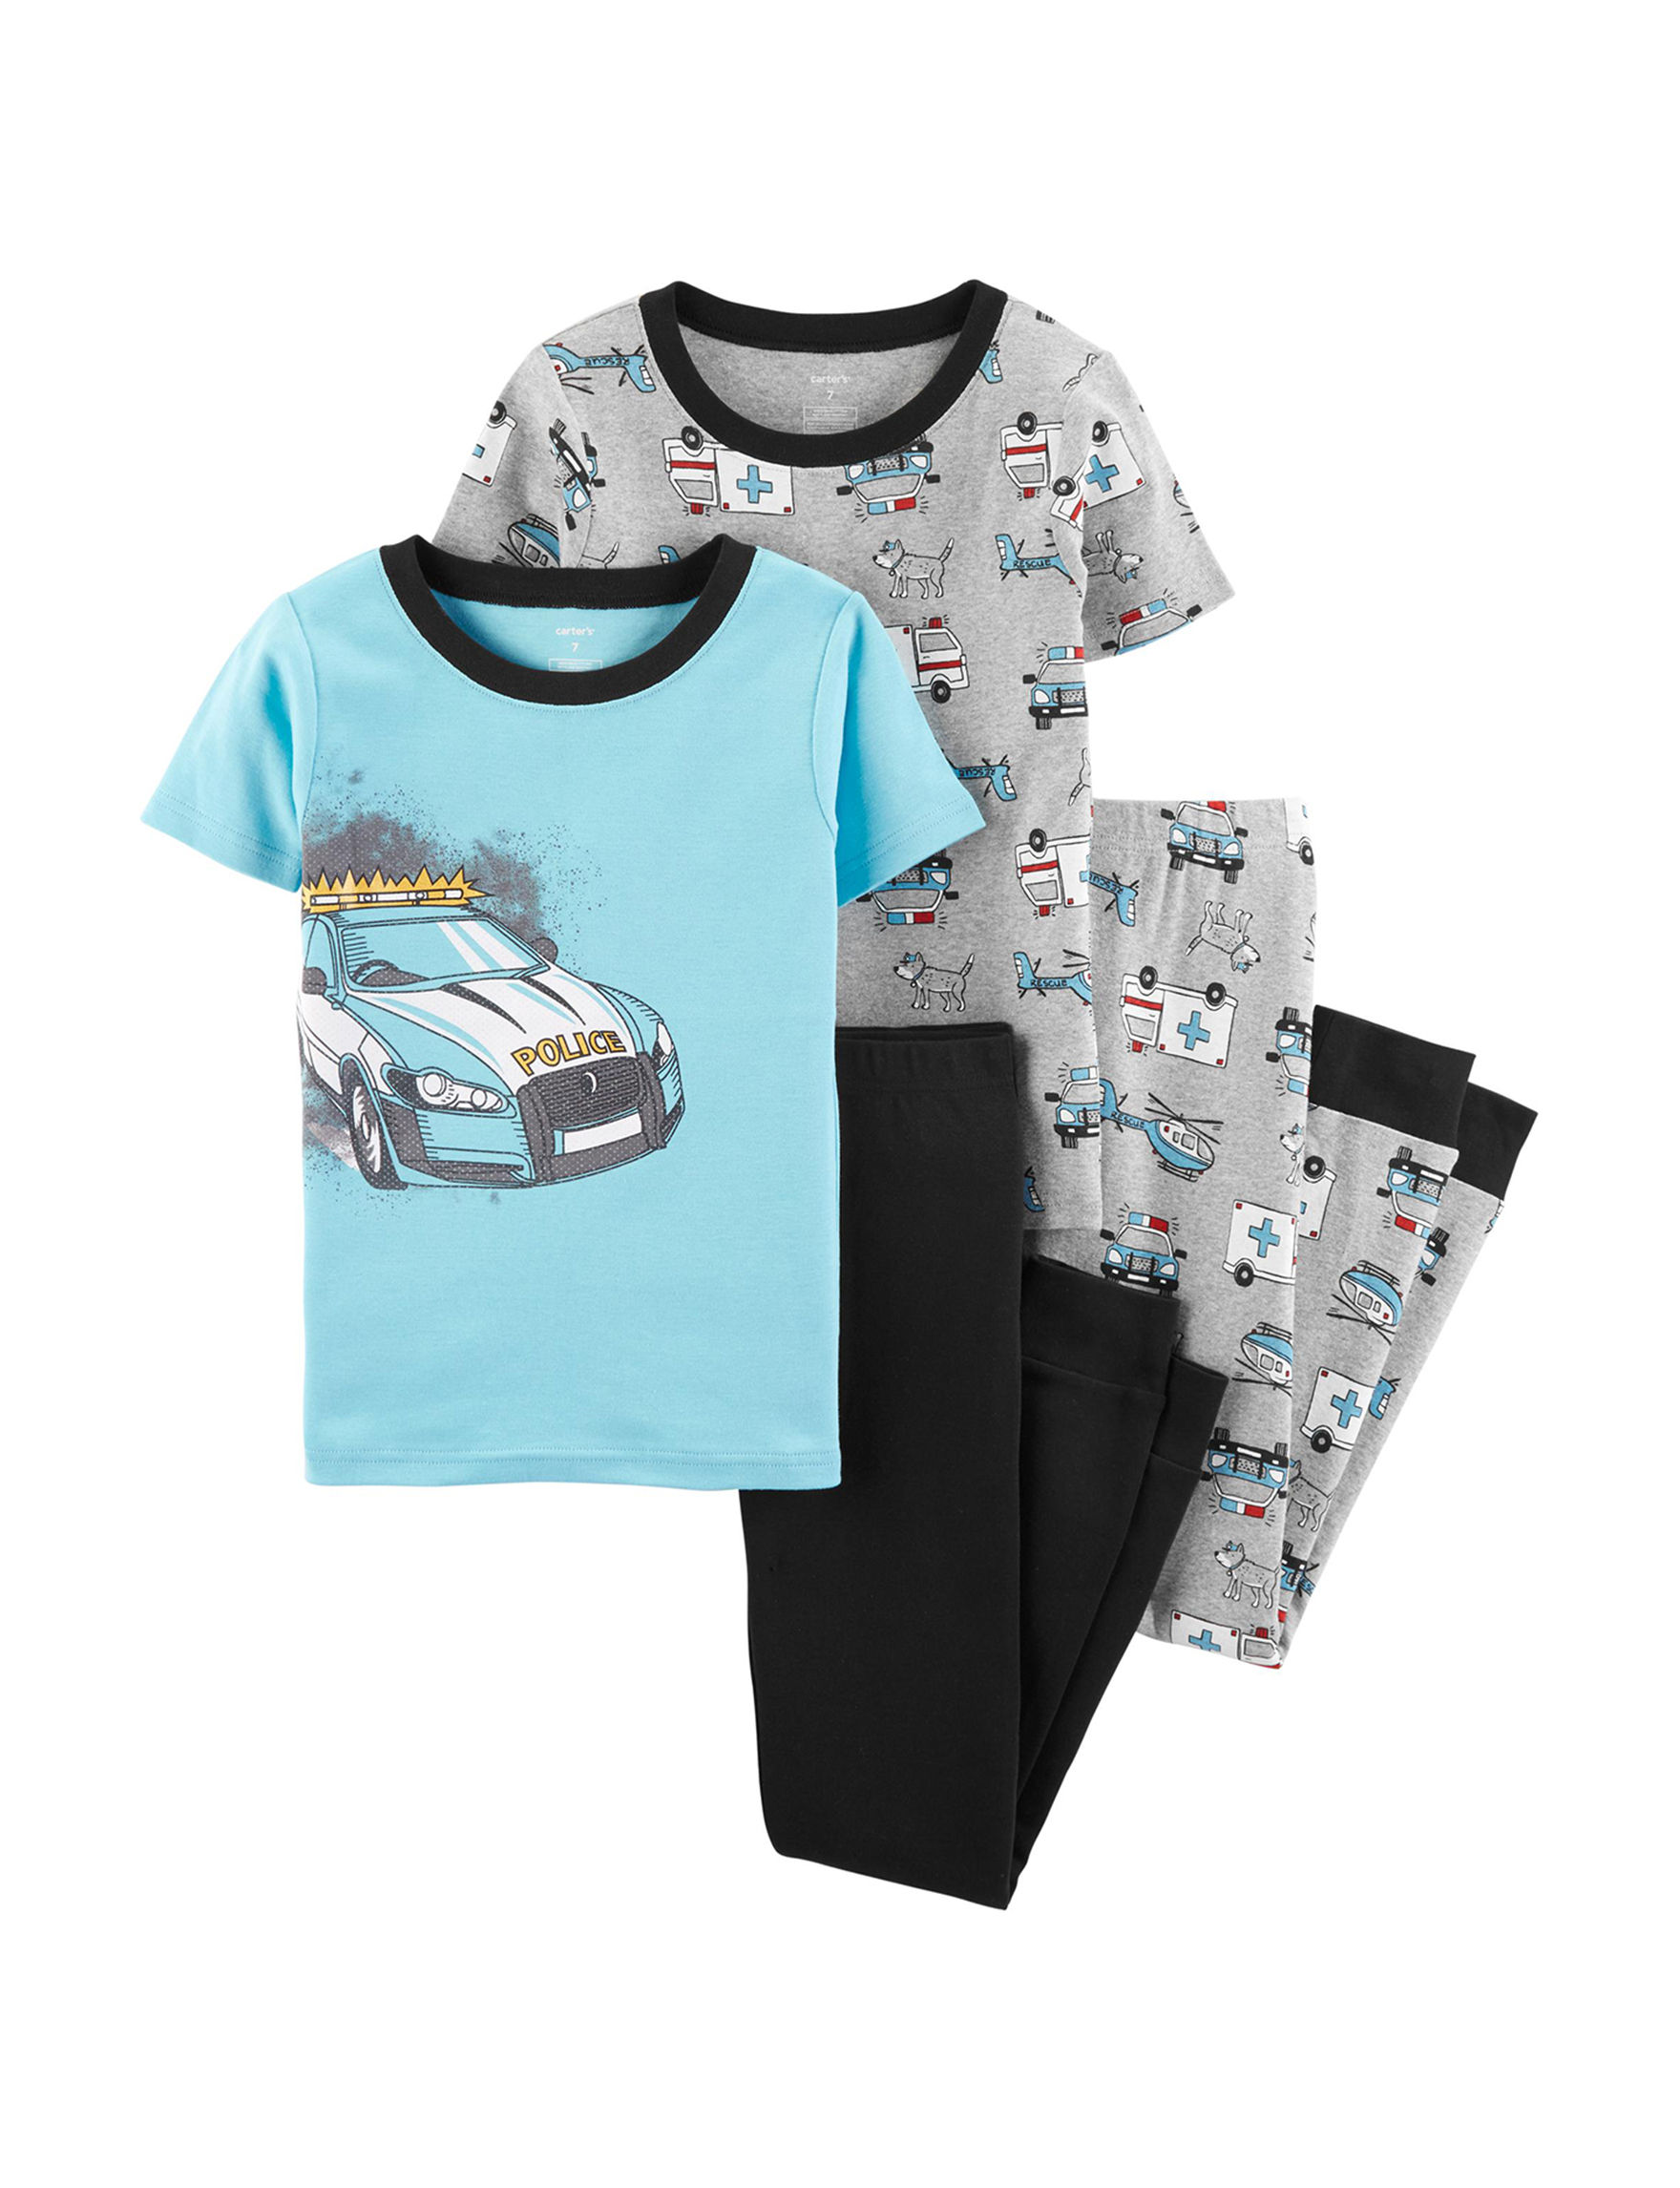 Carter's Blue / Grey Pajama Sets